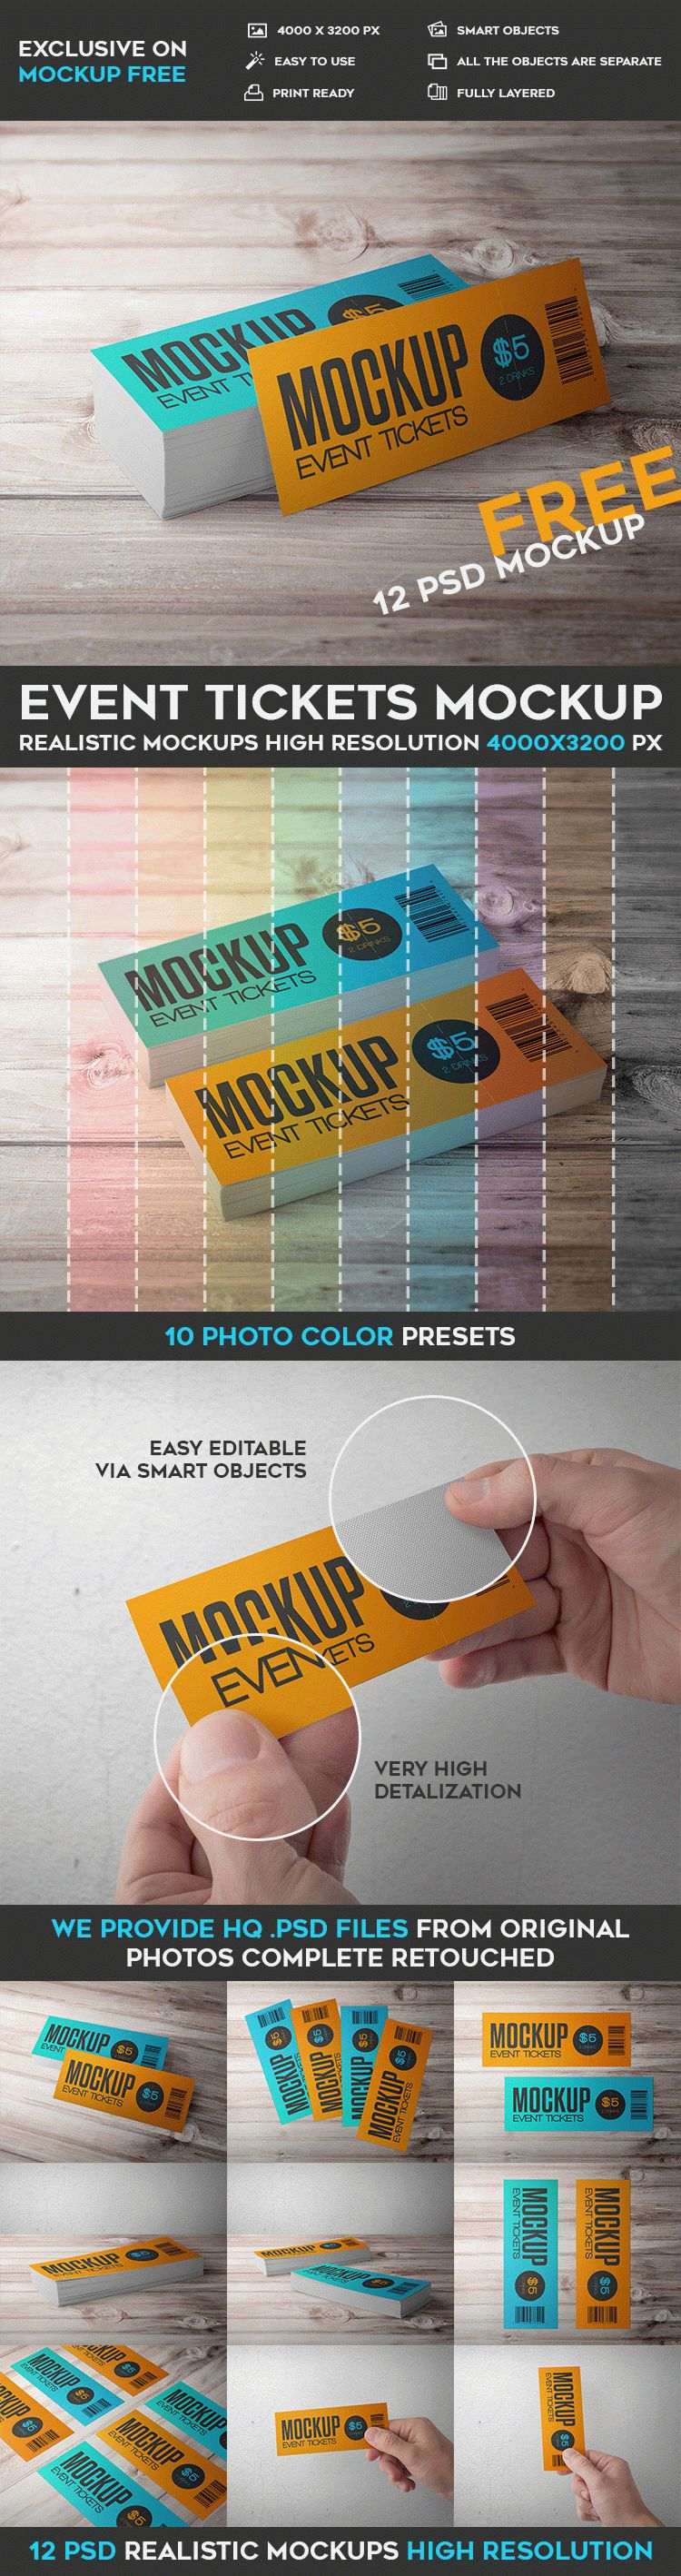 Event Tickets - 12 Free PSD Mockups